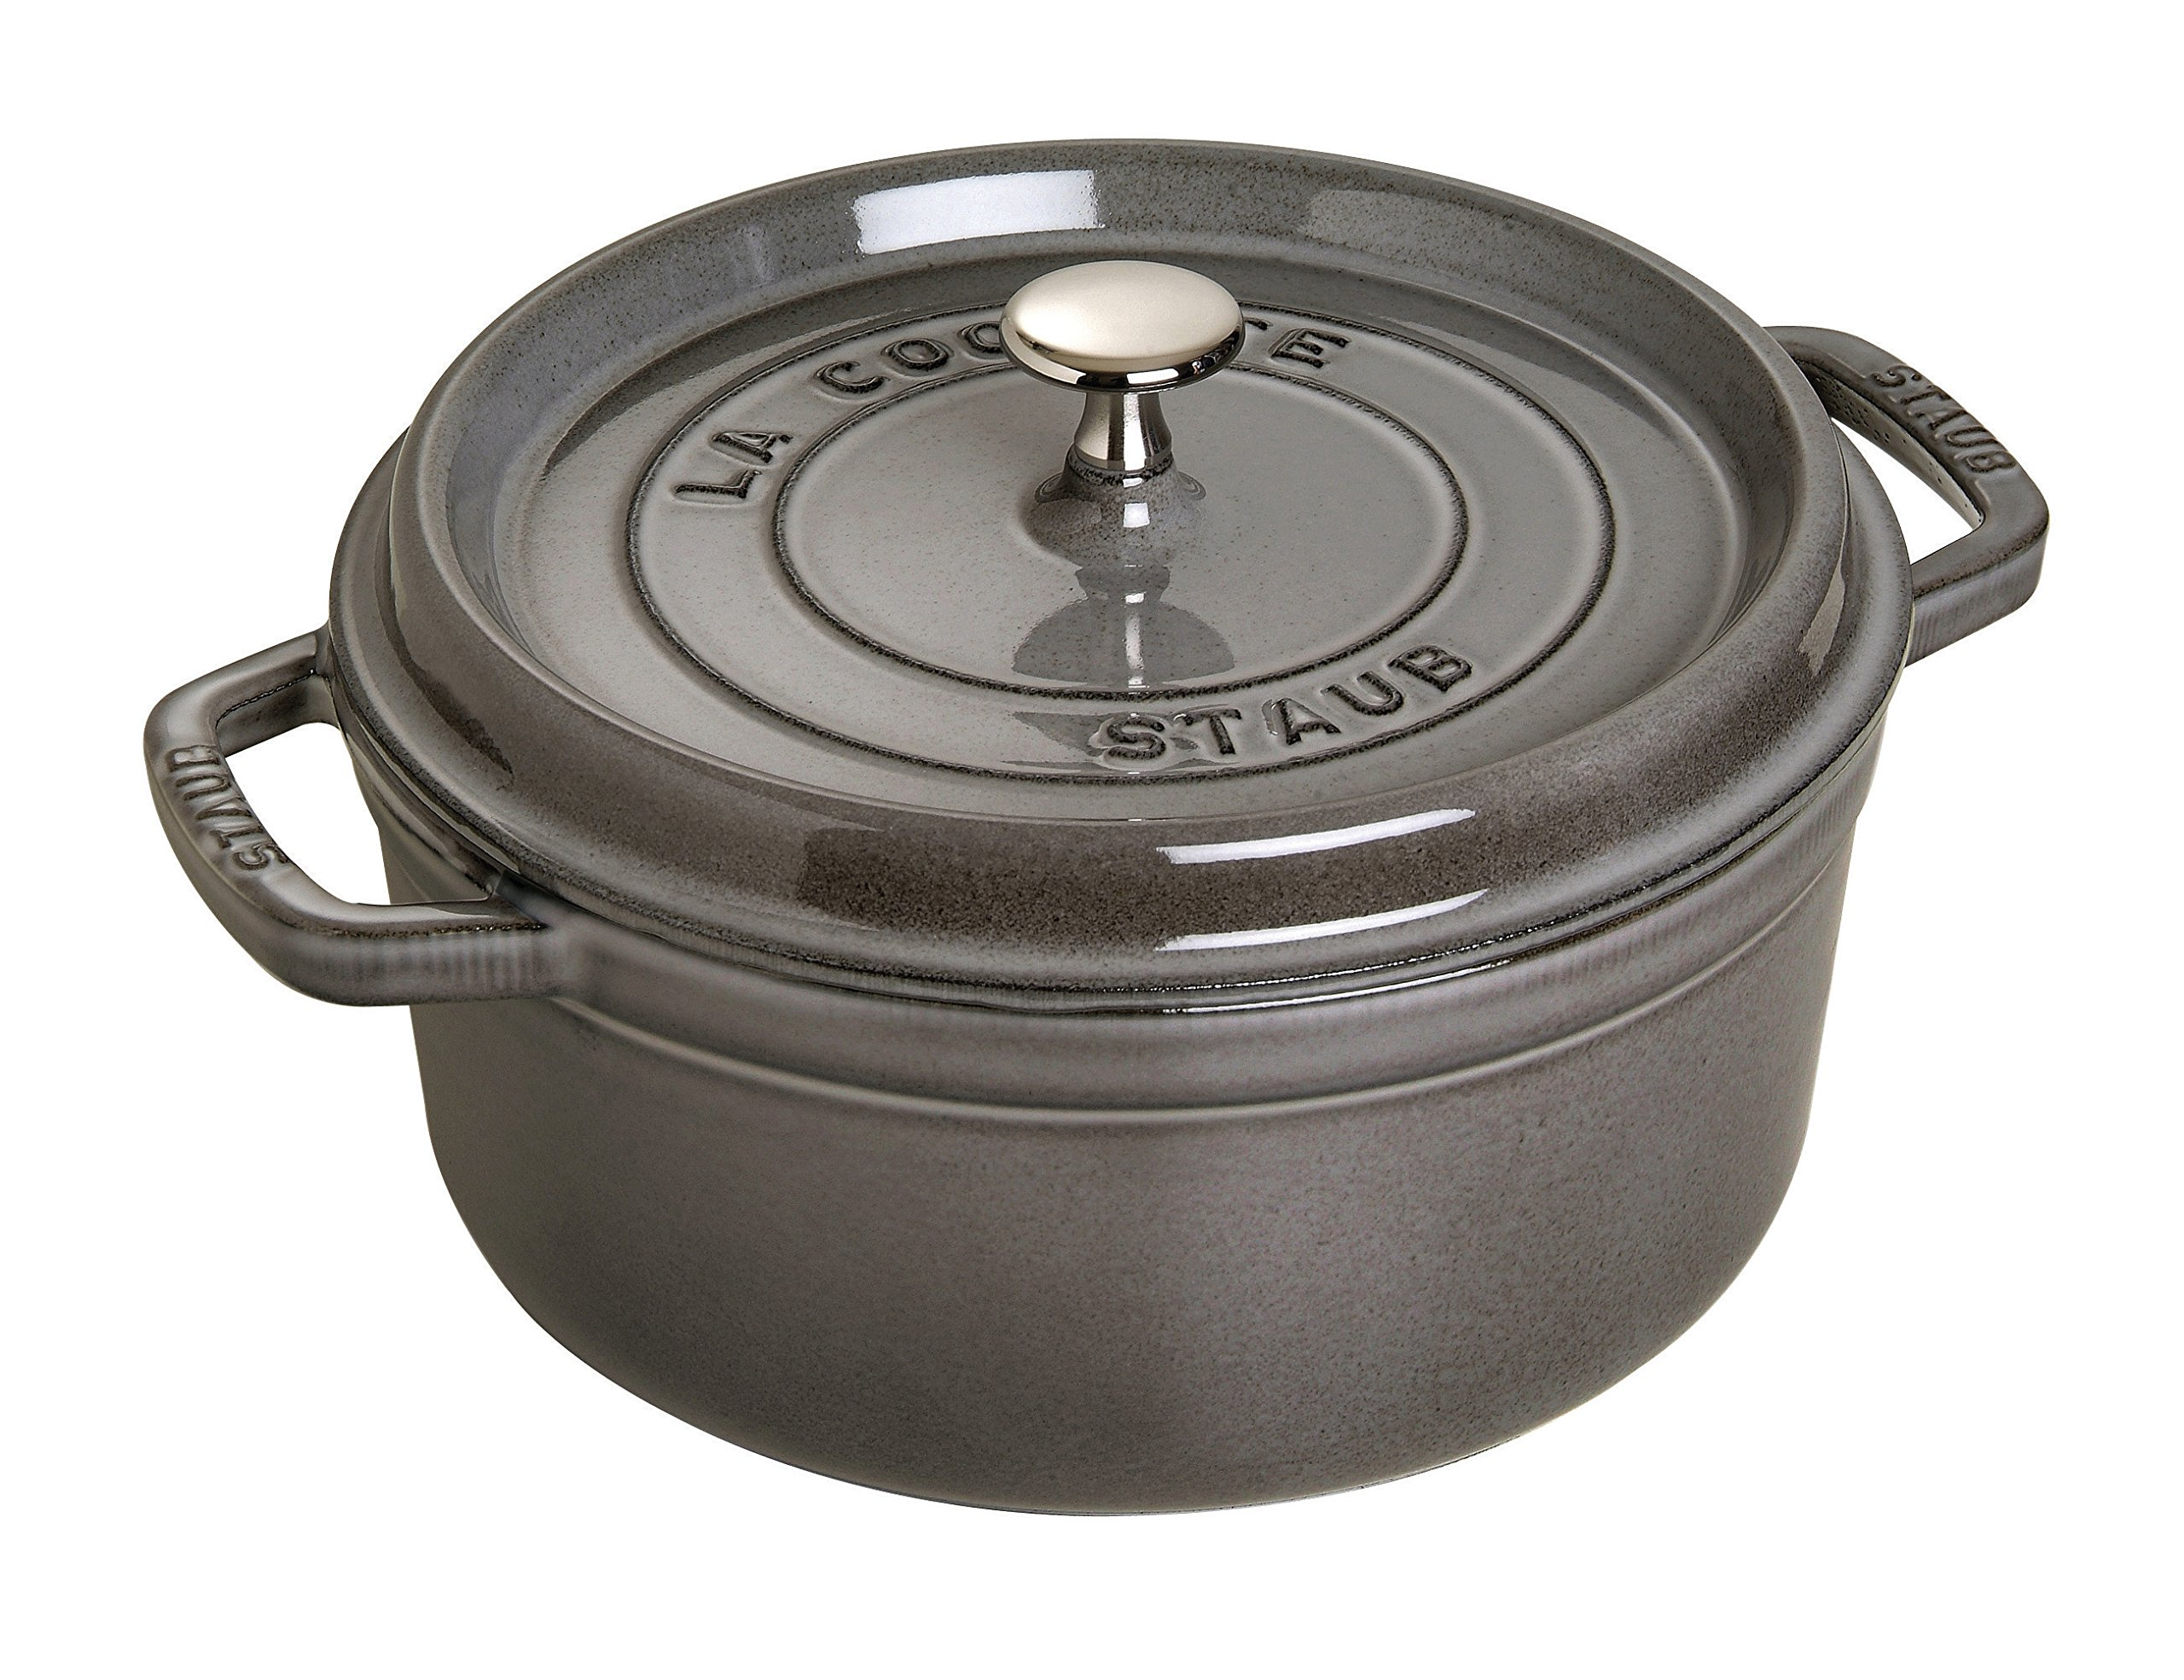 Staub Round Dutch Oven 9-quart Graphite Grey